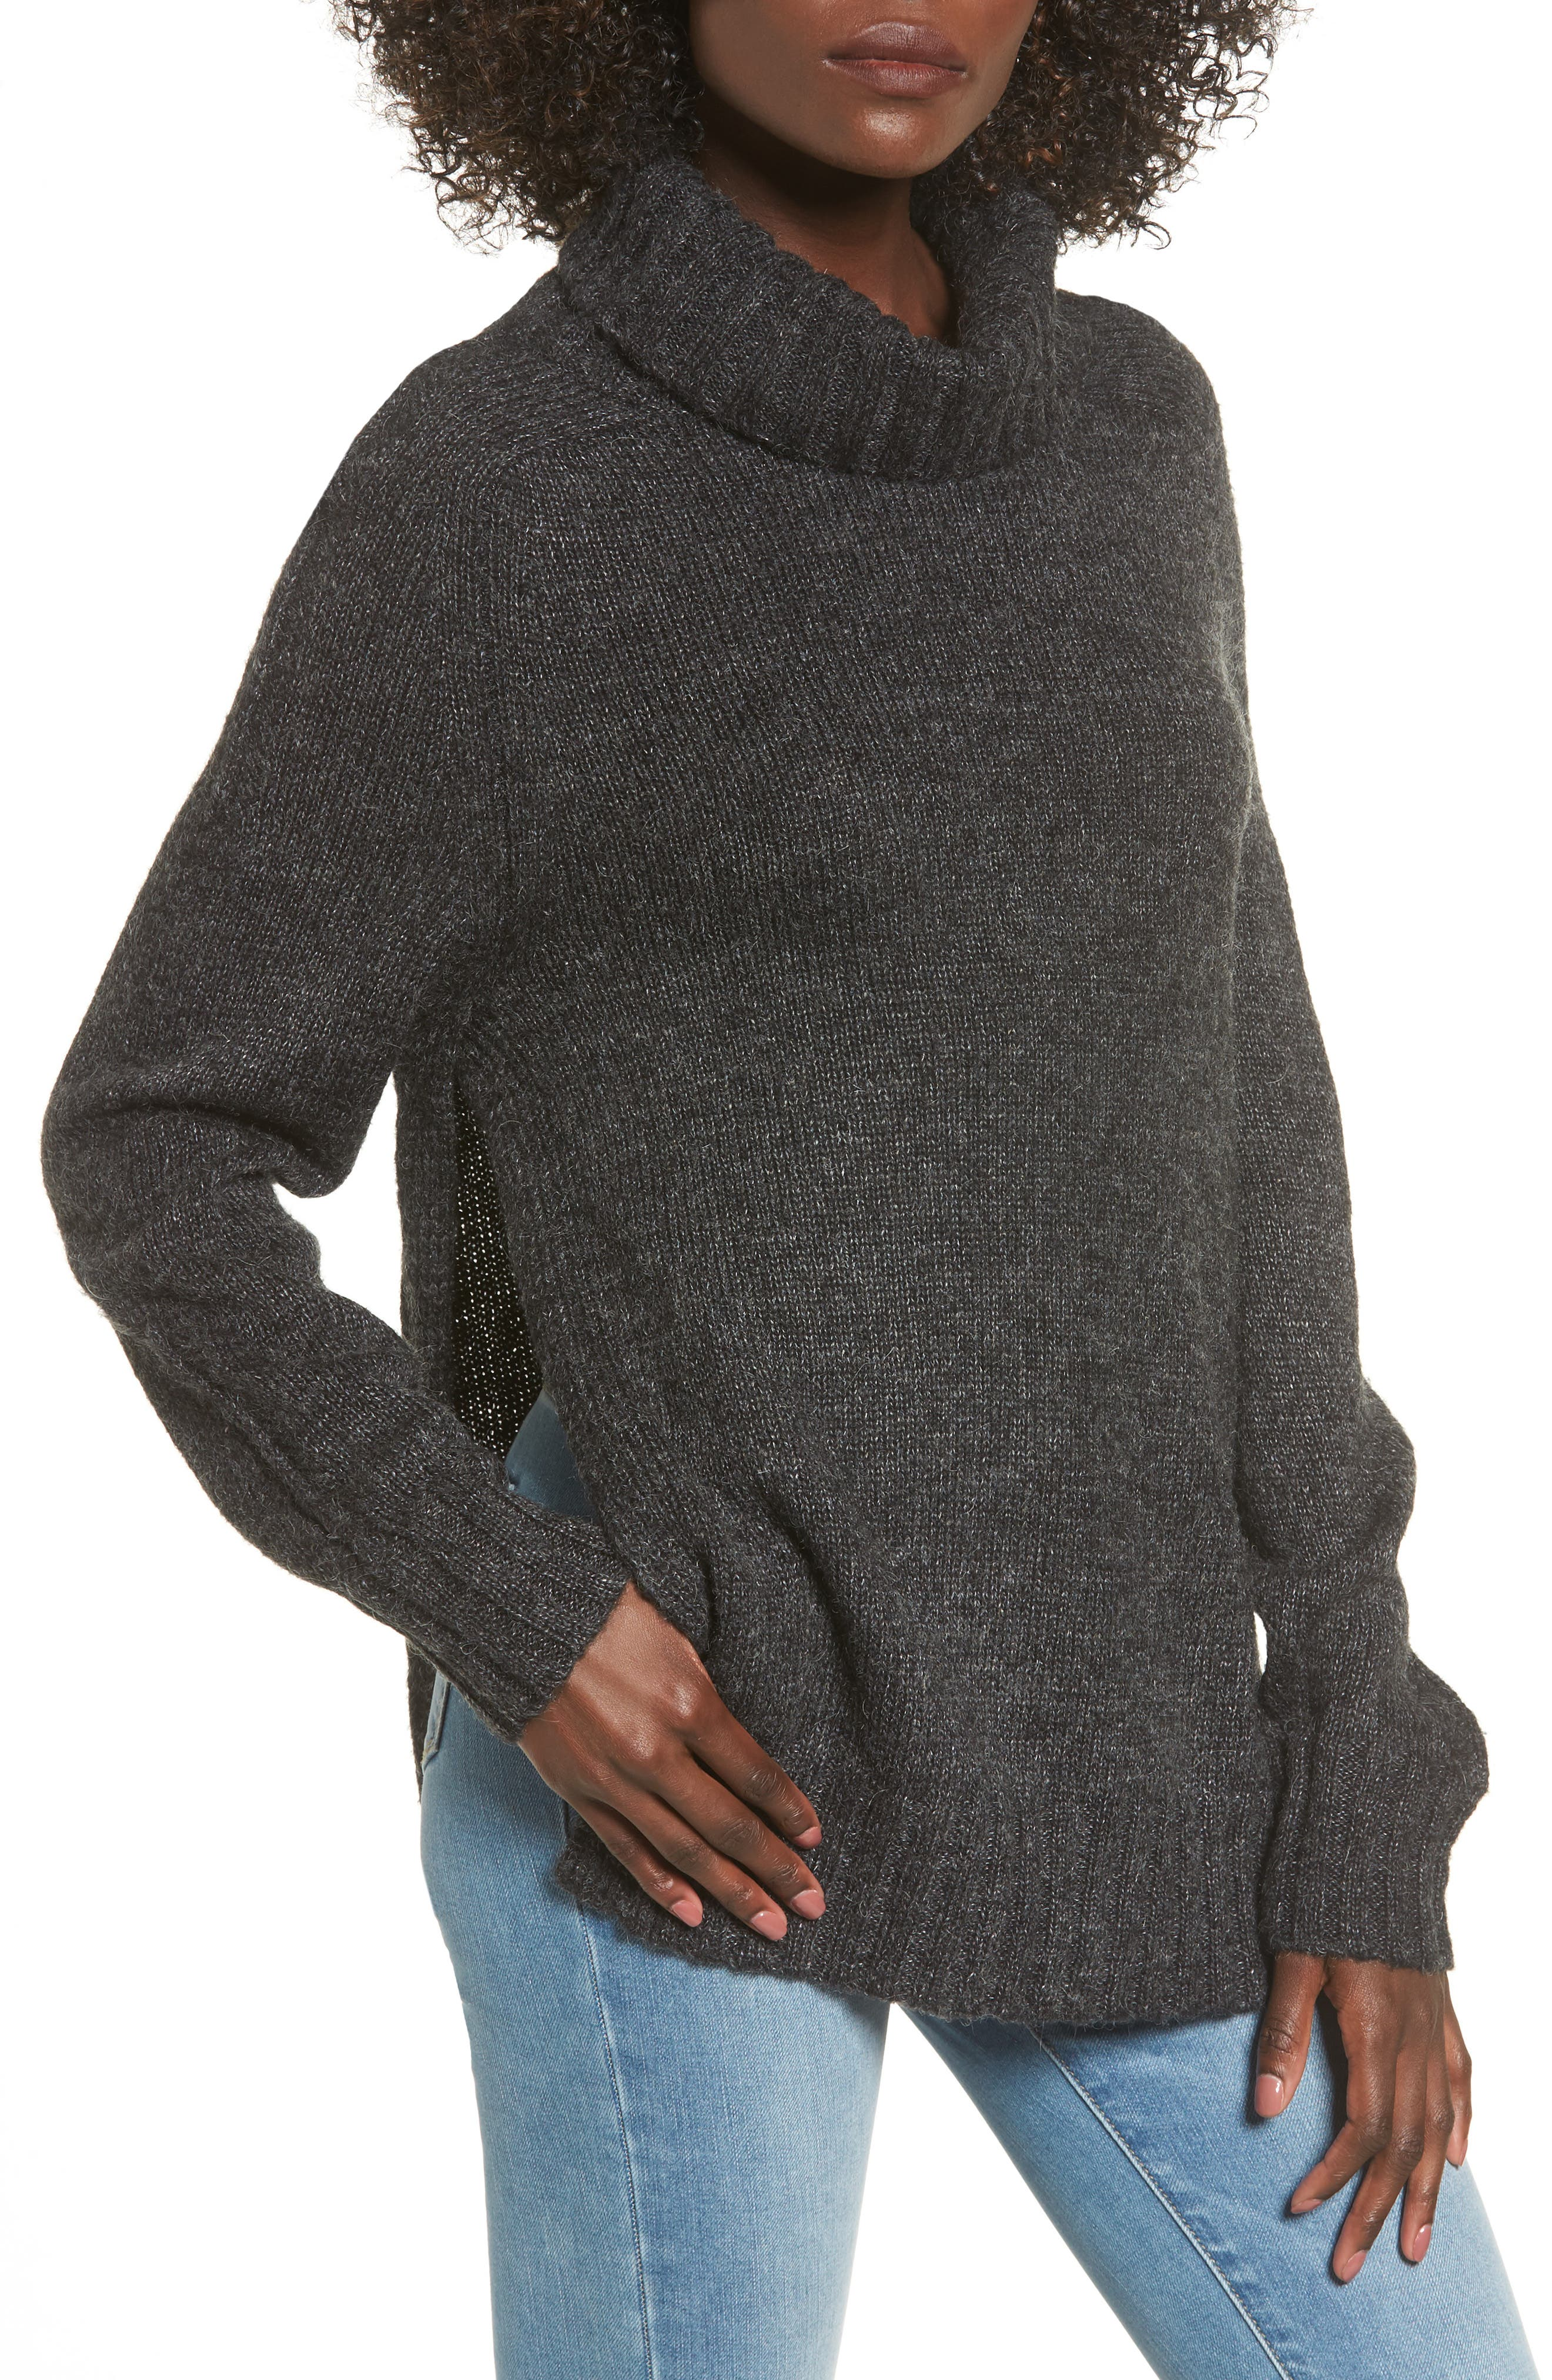 Main Image - ASTR the Label Stacy Turtleneck Sweater